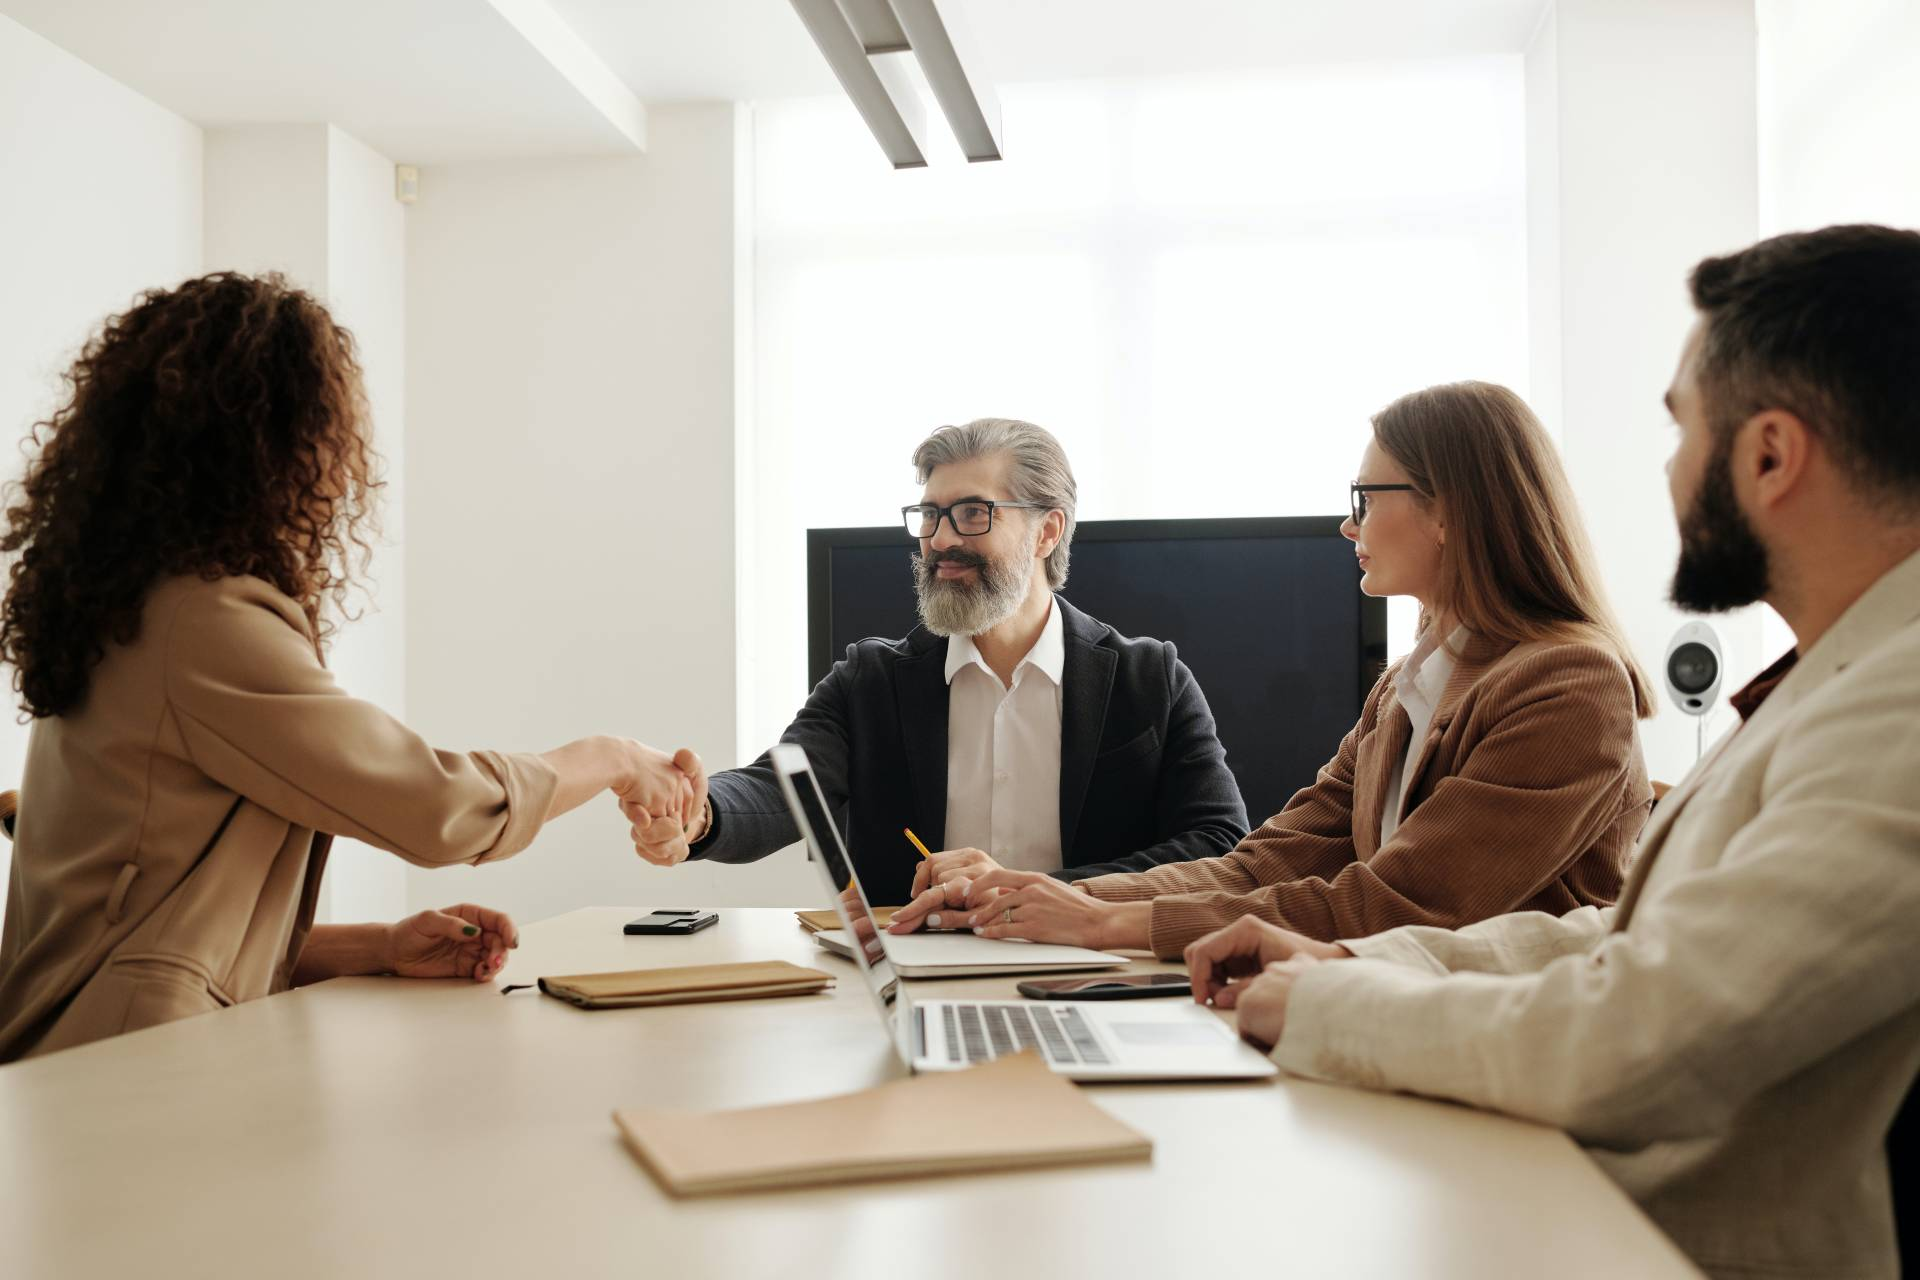 How to Hire Perfect Employees for Your Business